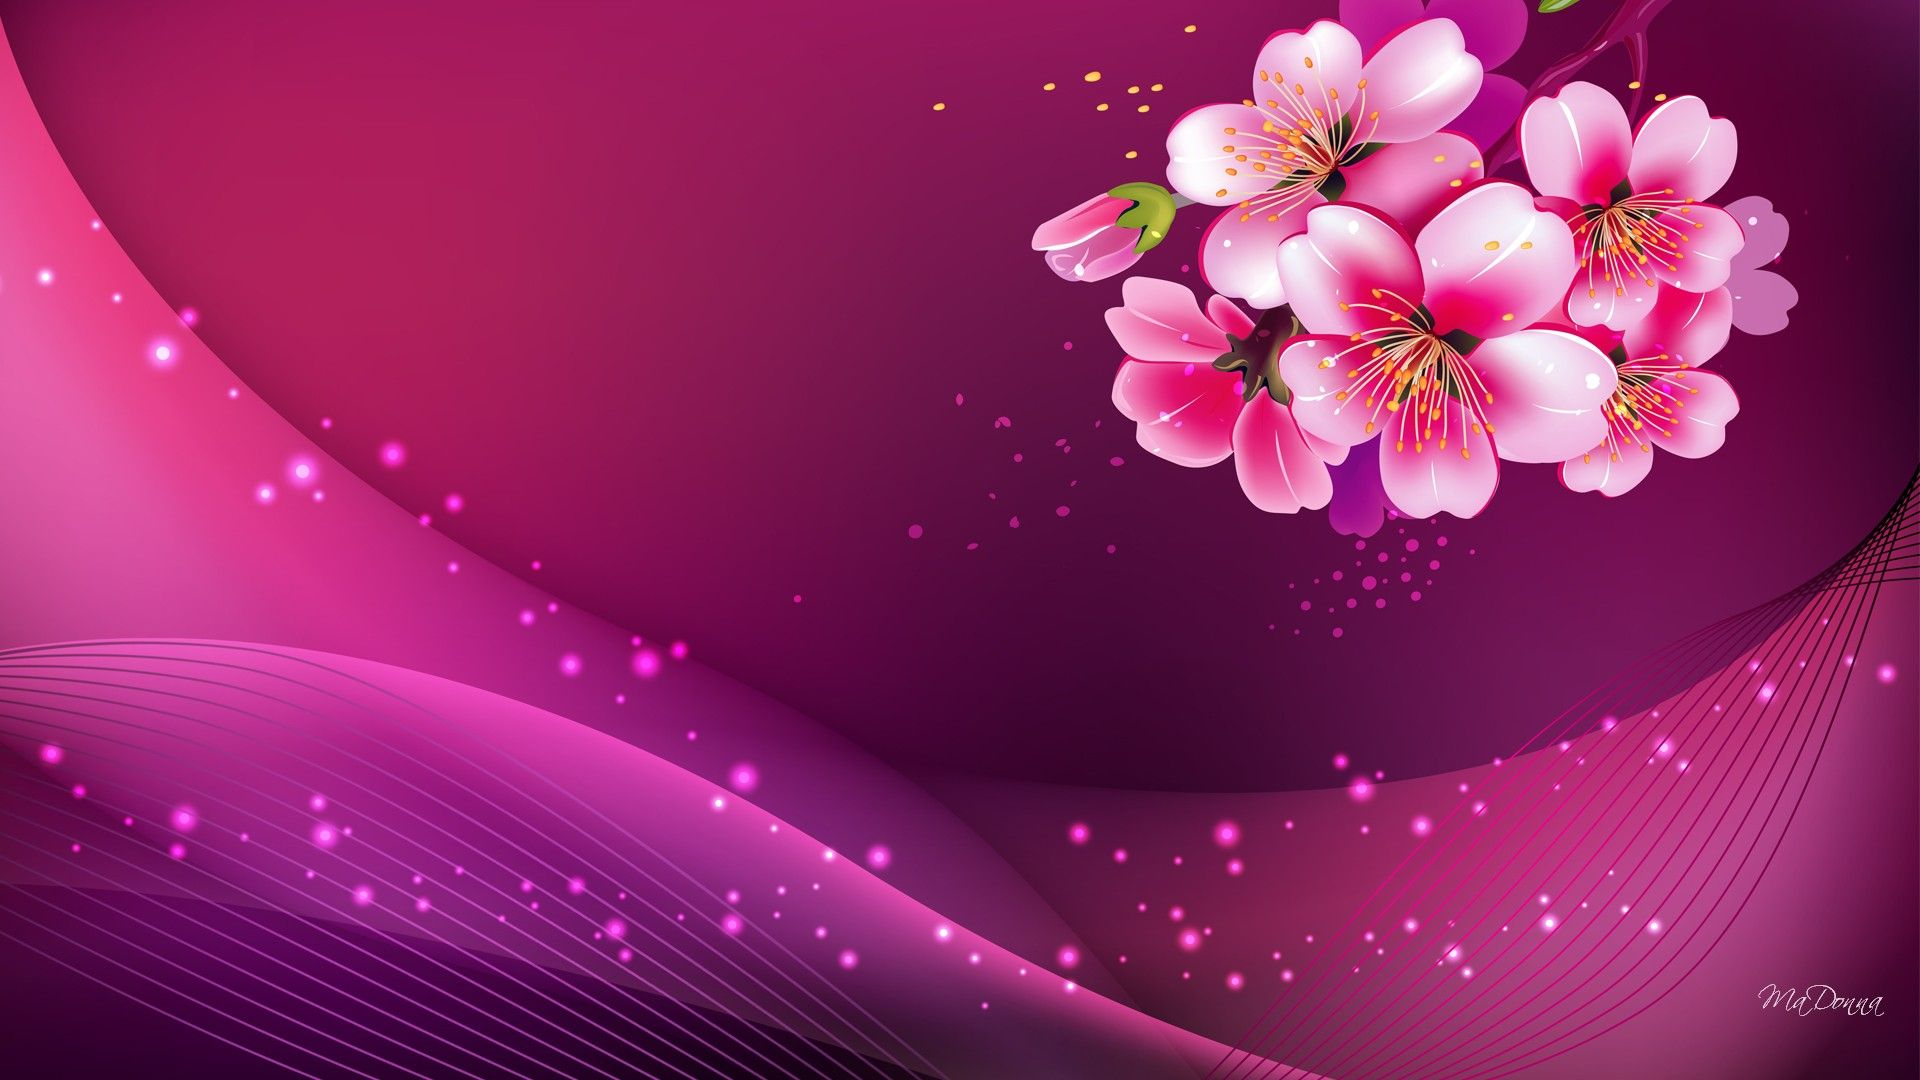 widescreen pink background hd image pc | Colour Pink ...